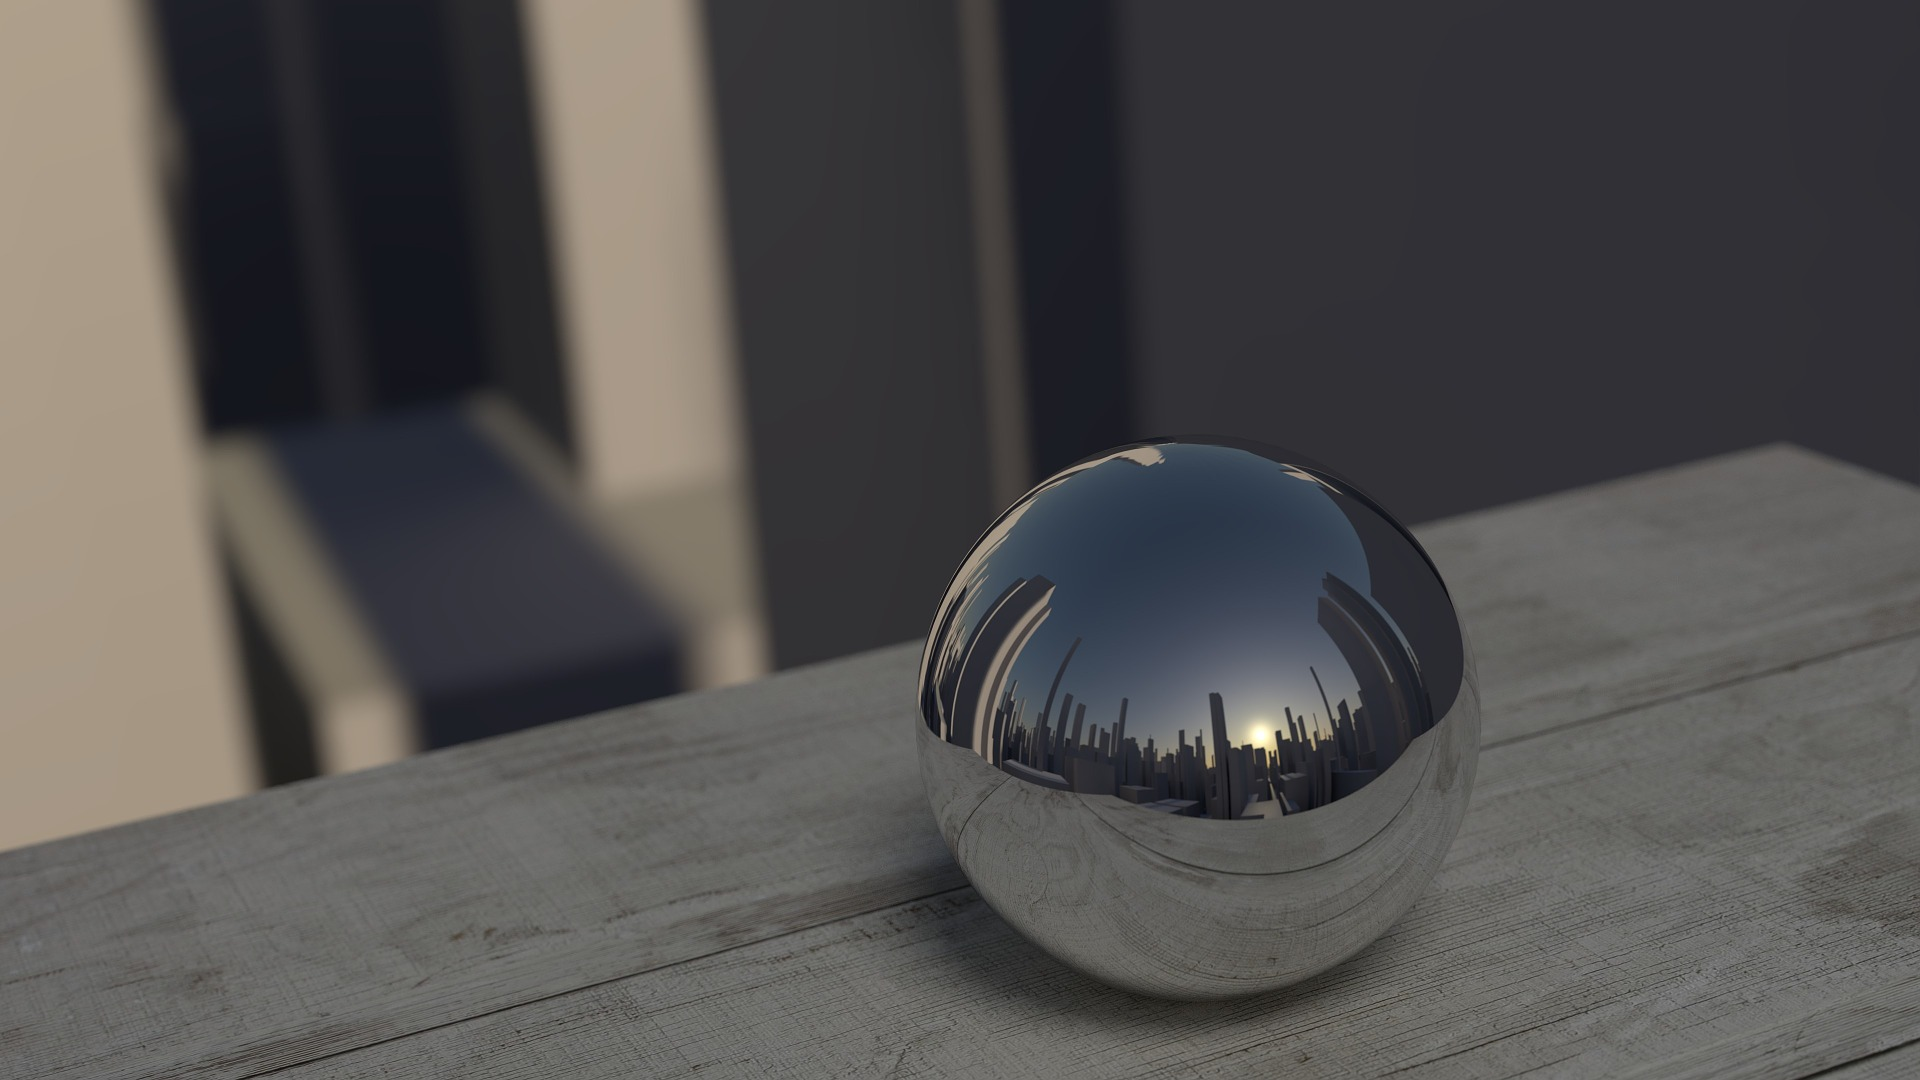 A reflective perspective